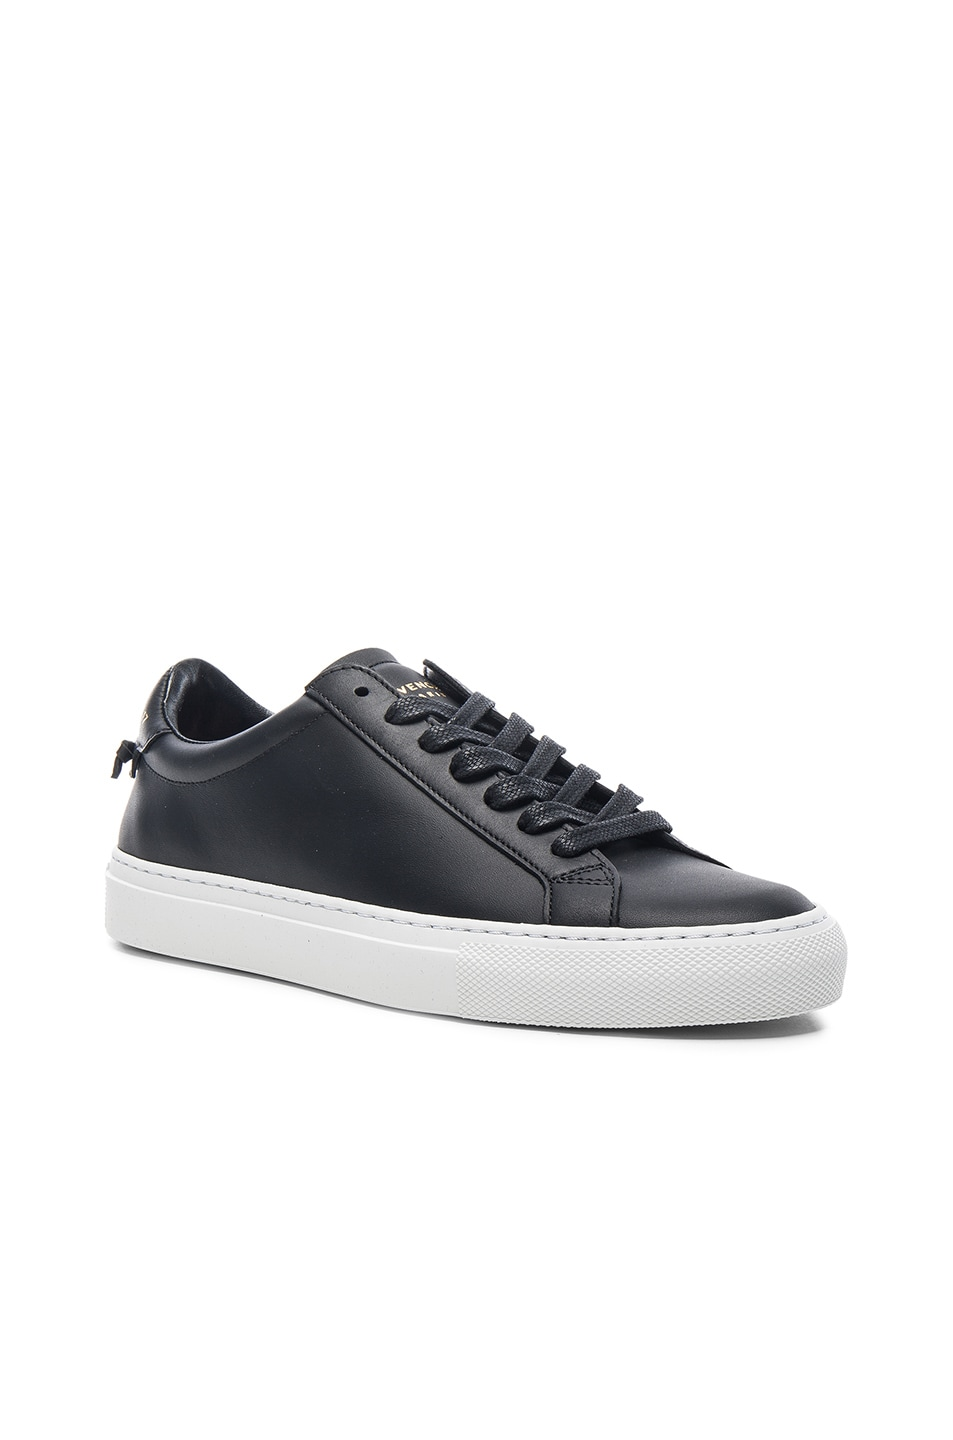 Image 2 of Givenchy Knots Leather Low Sneakers in Black